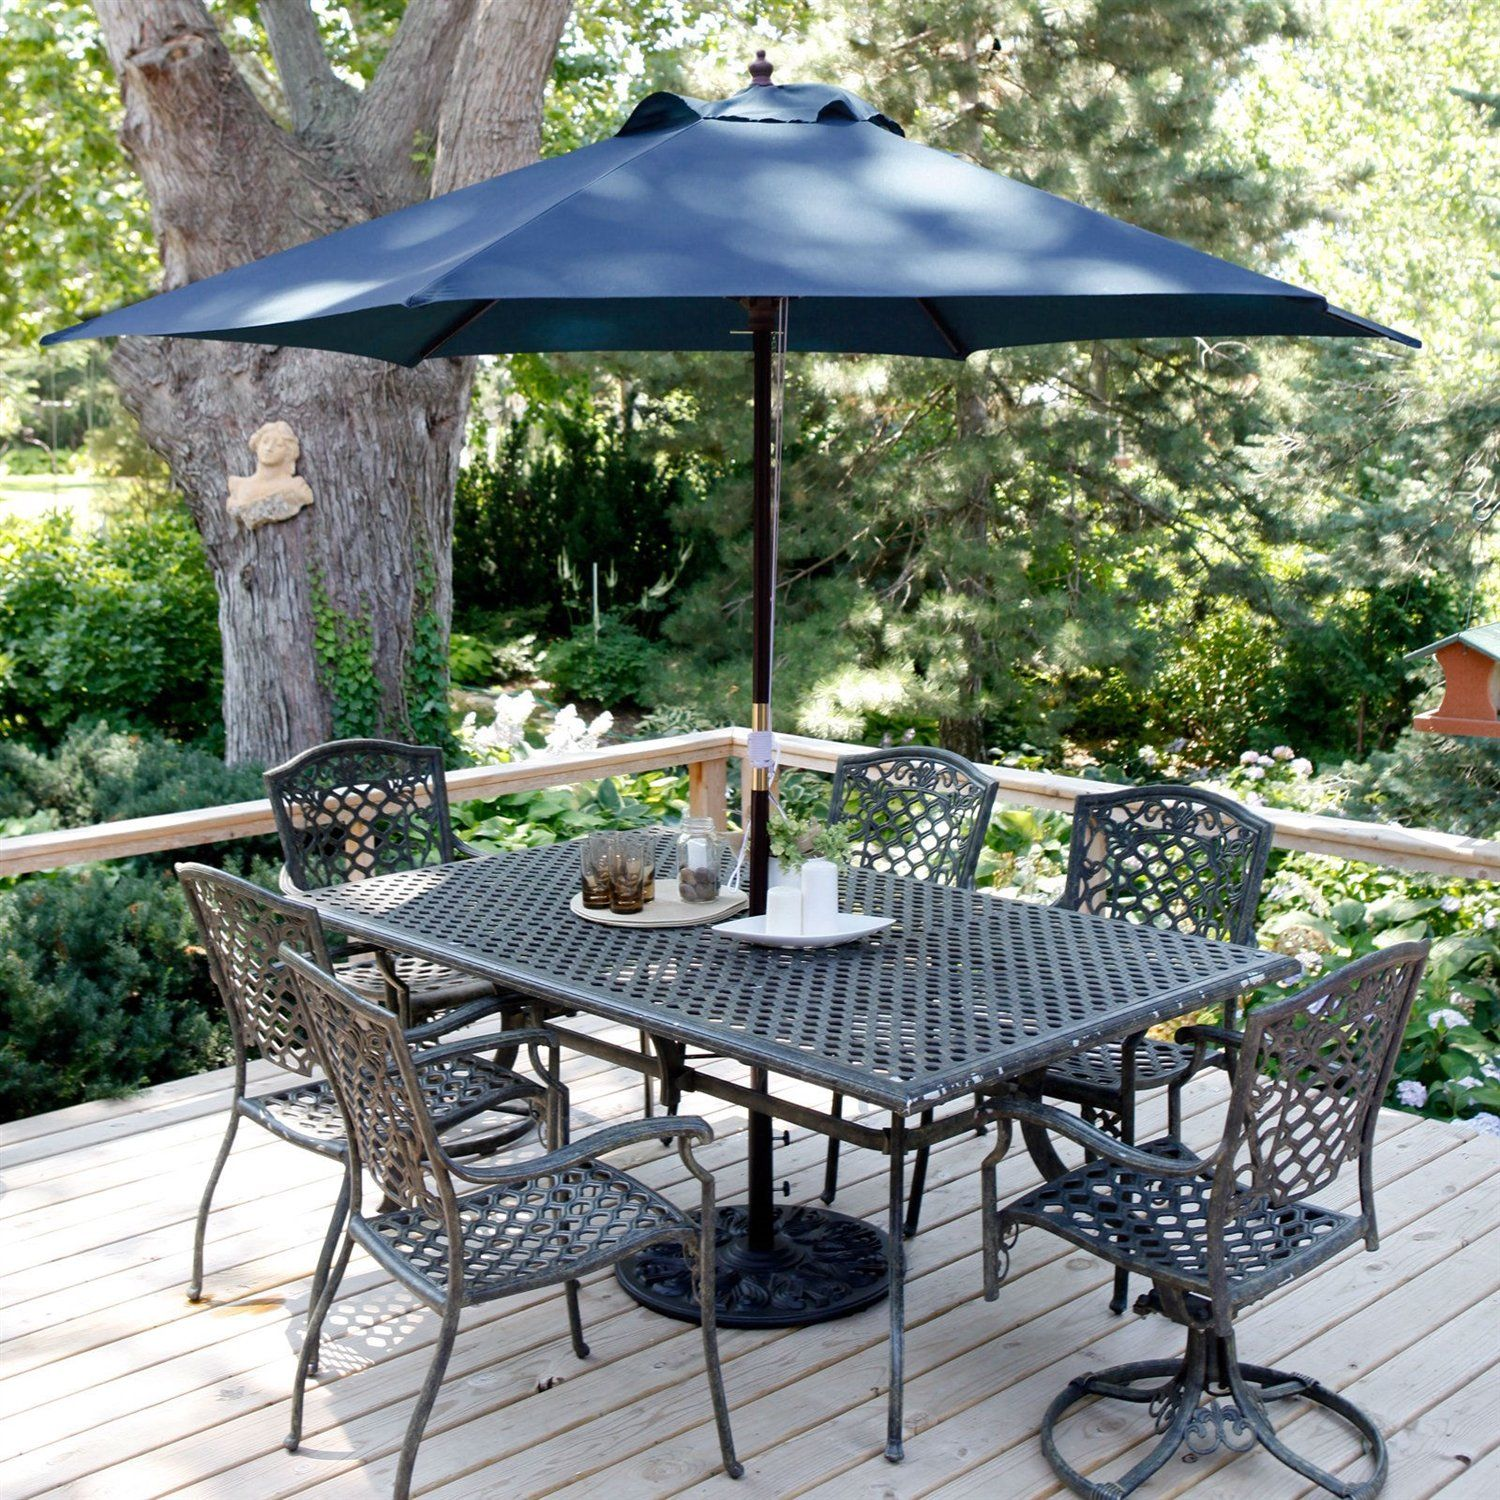 Navy Blue 11 Ft Patio Umbrella With Antique Bronze Pole And Base Patio Umbrella Offset Patio Umbrella Patio